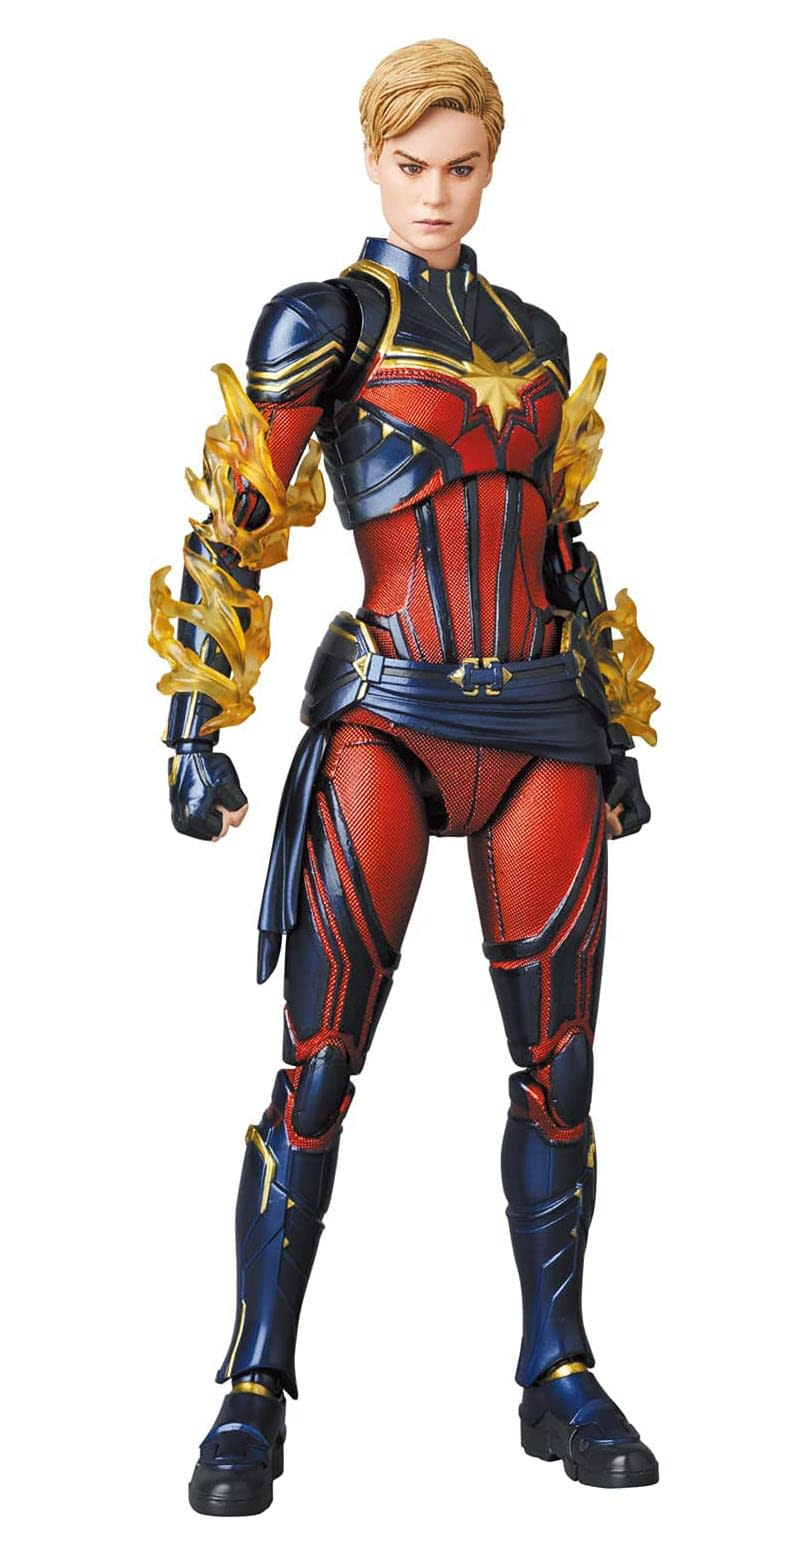 Captain Marvel Embraces the Endgame With New Marvel MAFEX Figure